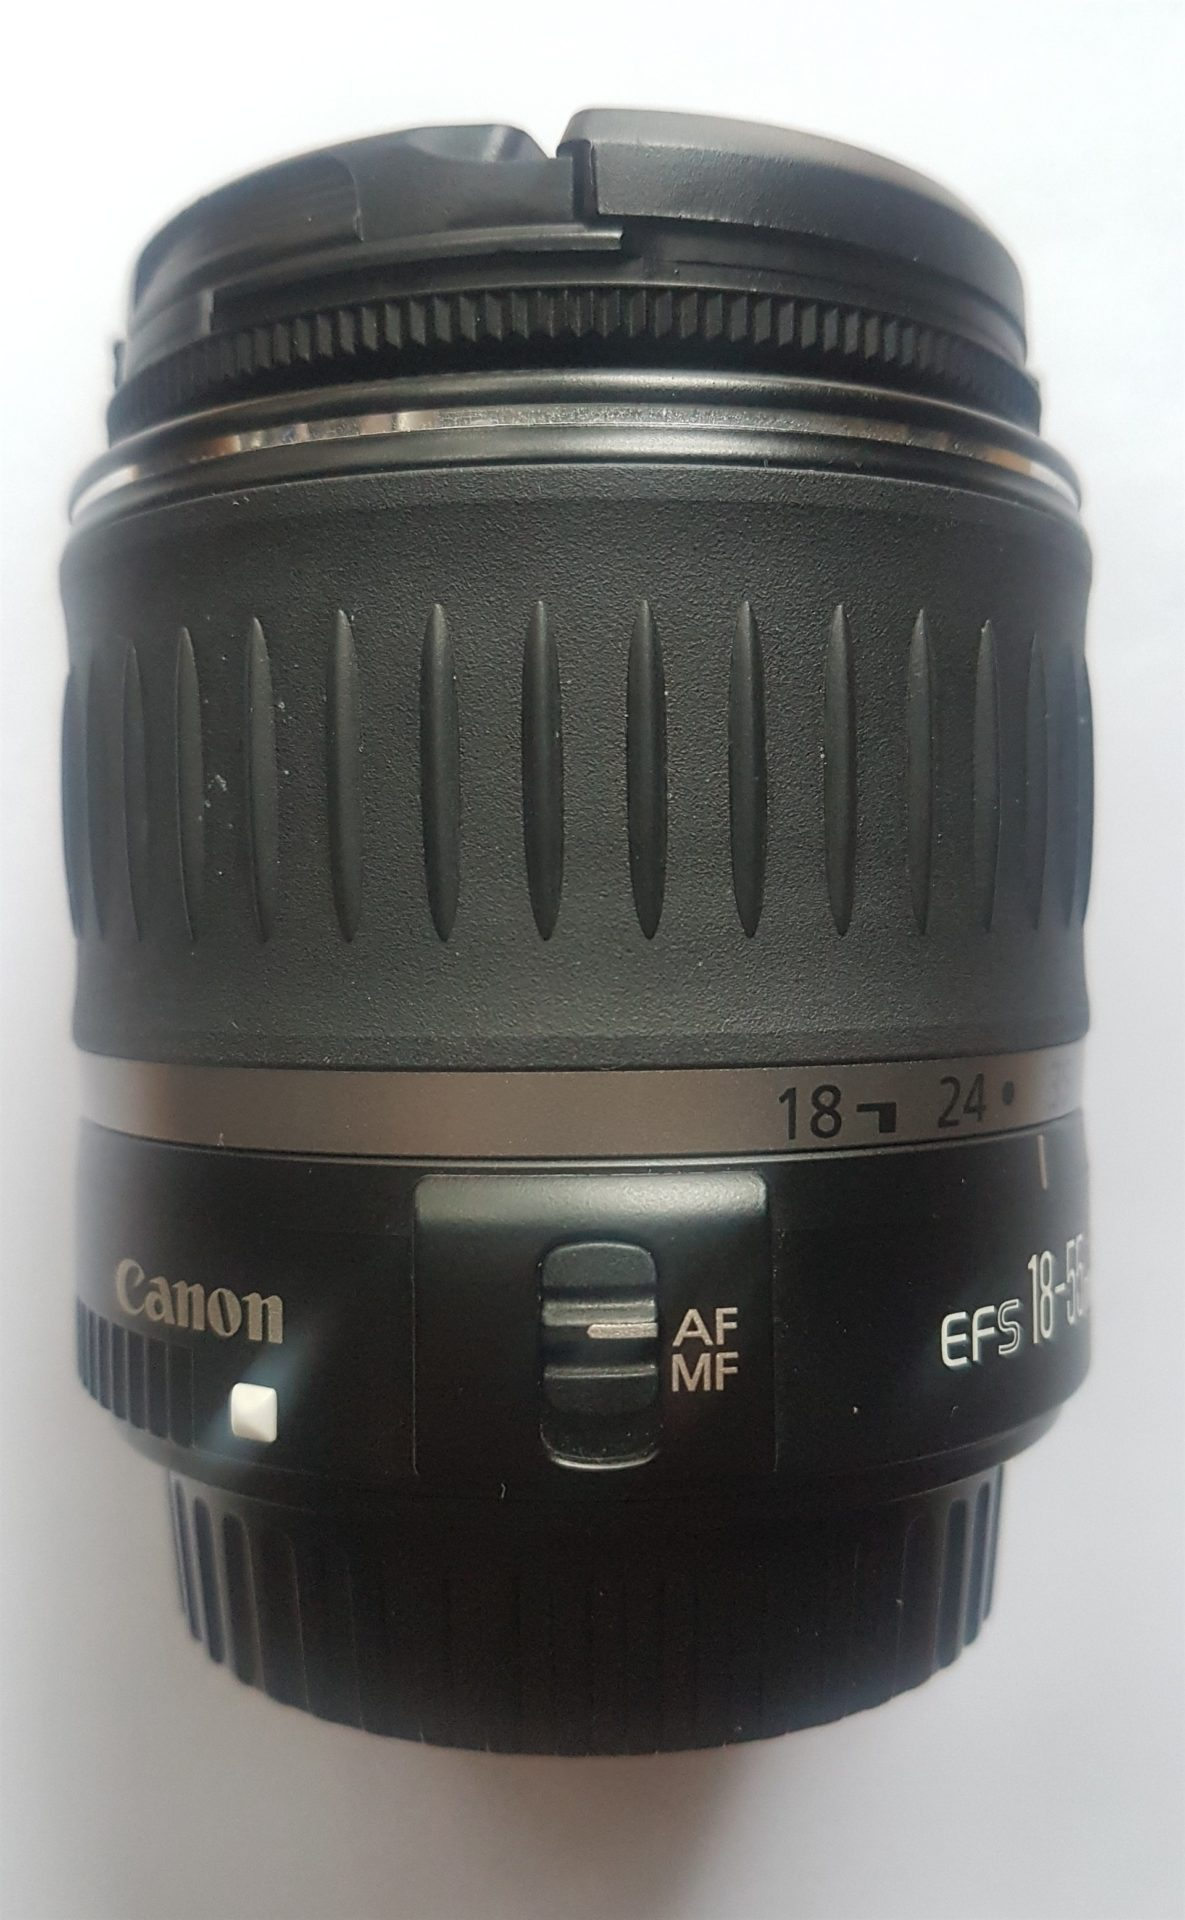 Canon EF-S 18-55mm f/3.5-5.6 Zoom Lens